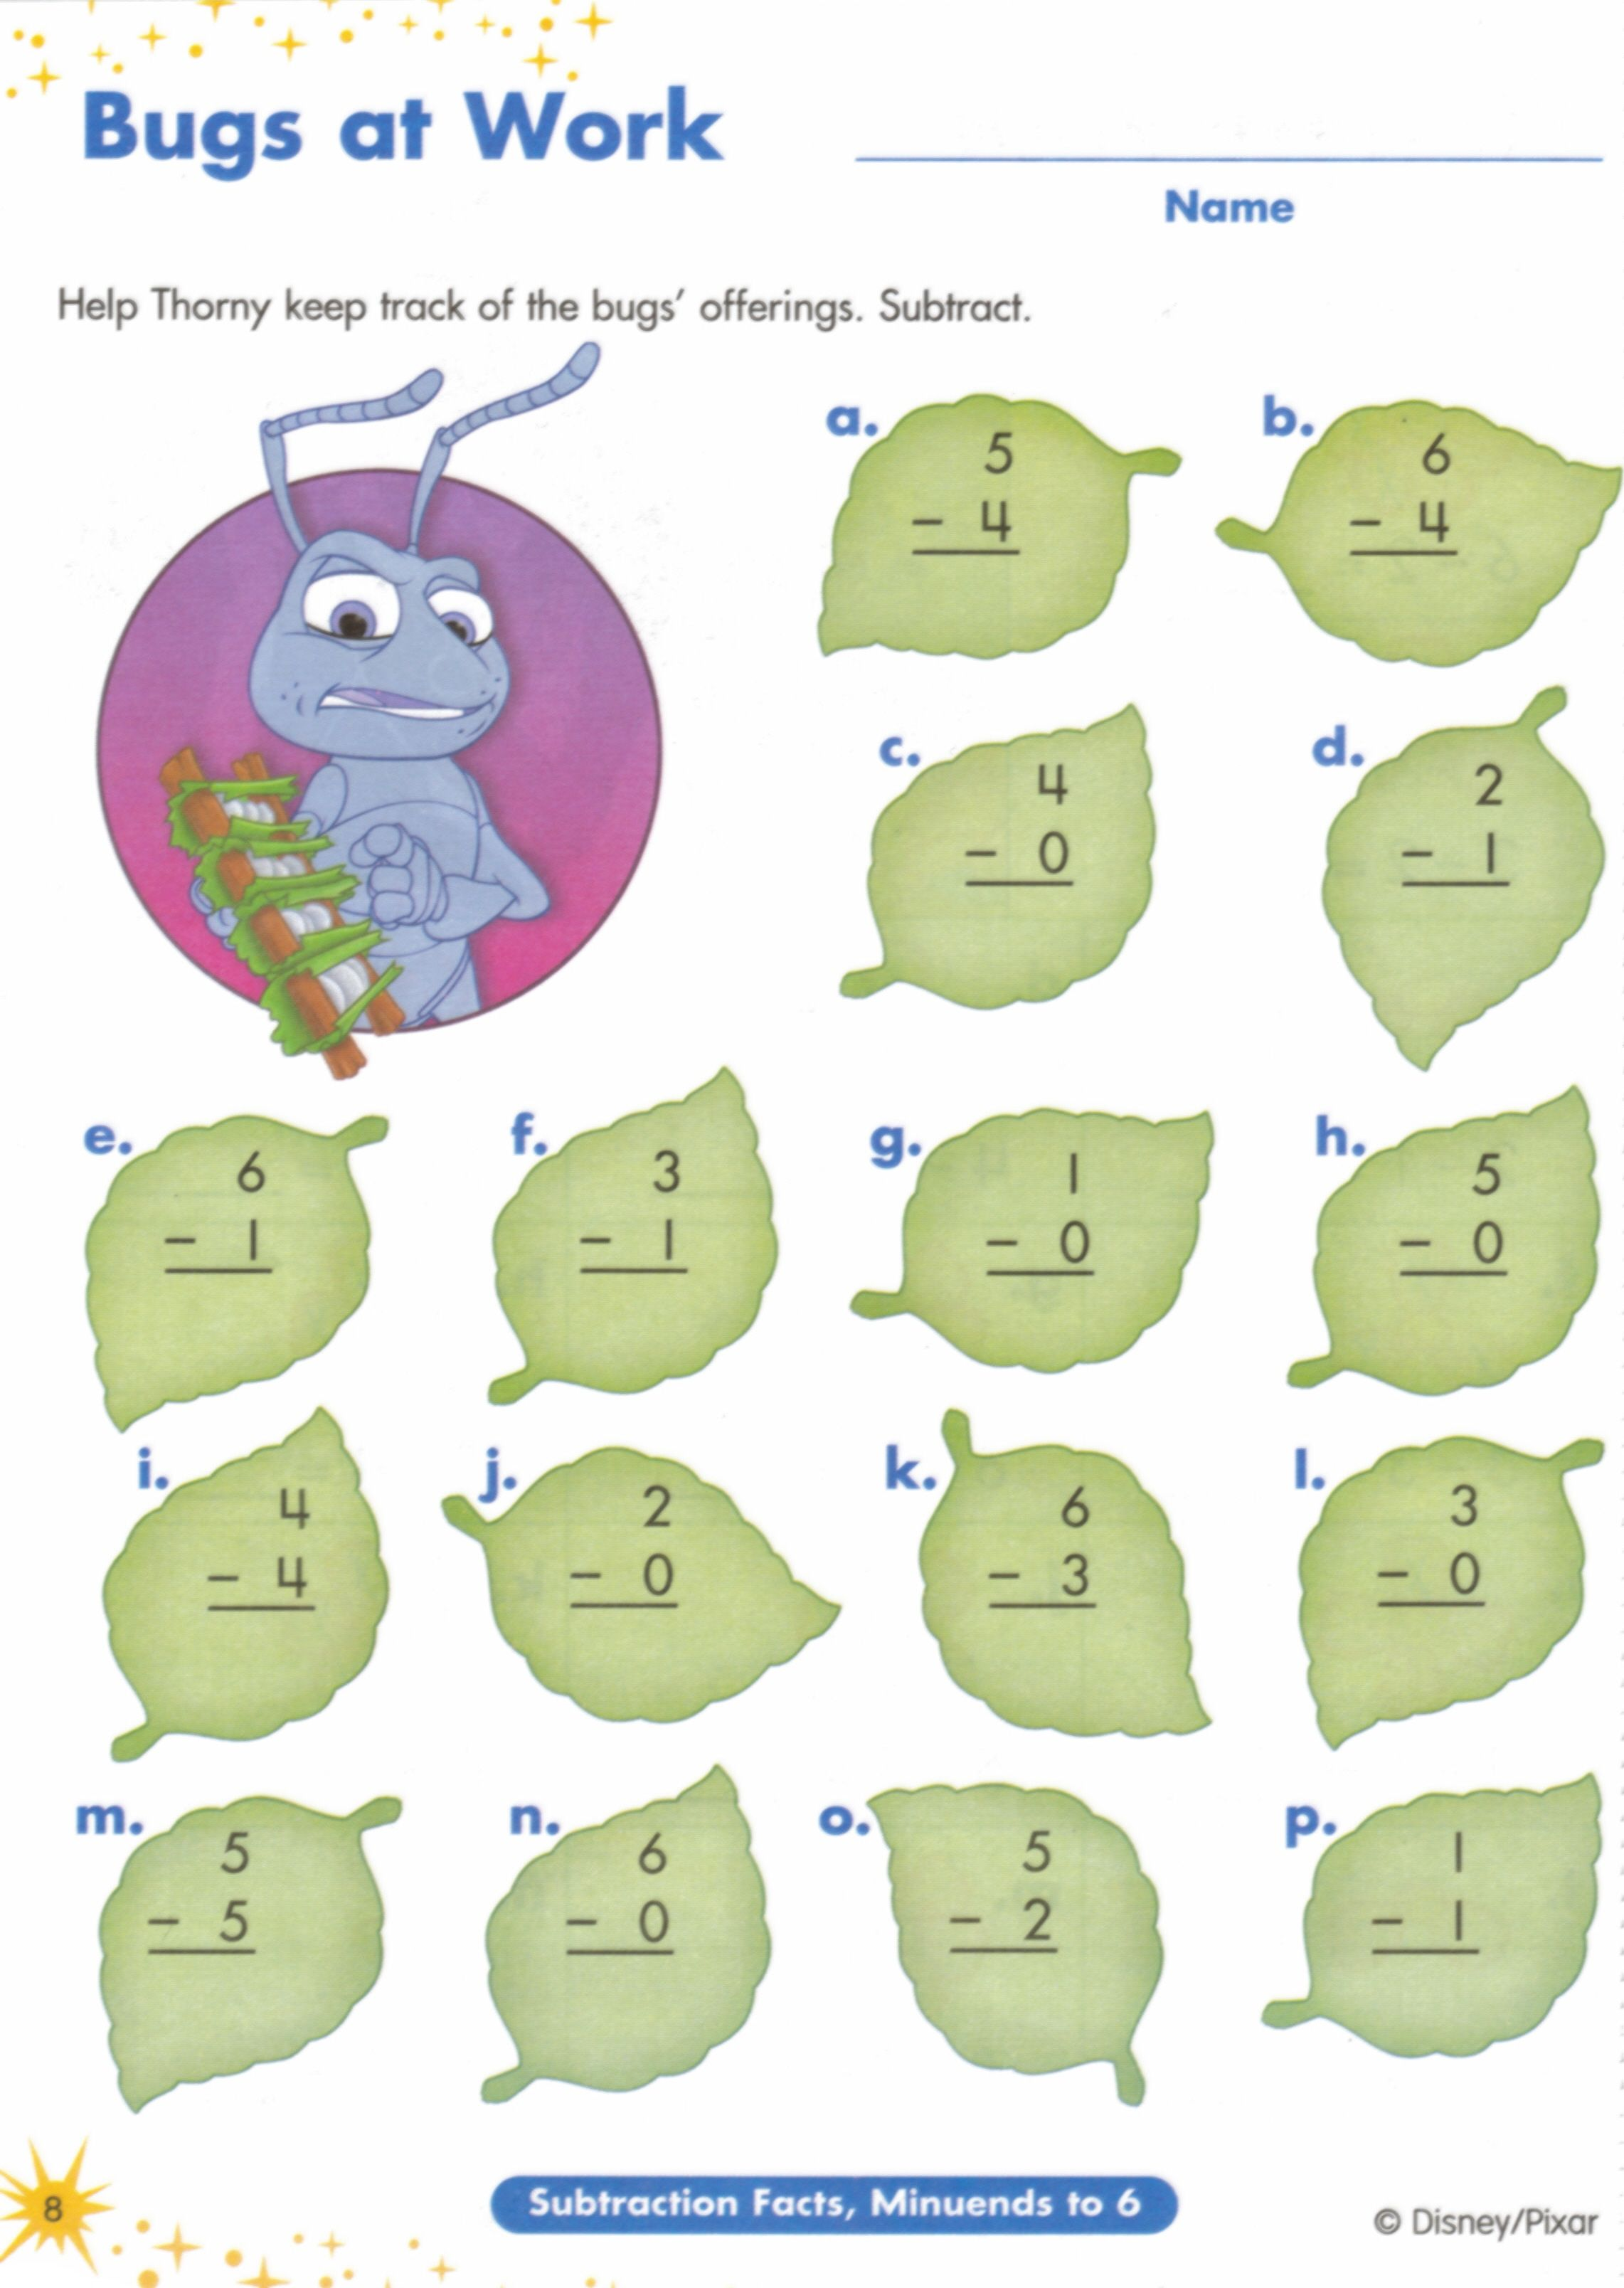 Weirdmailus  Terrific  Images About Worksheets On Pinterest  Fun Facts For Kids  With Fetching  Images About Worksheets On Pinterest  Fun Facts For Kids Earth Day Worksheets And Jungles With Cute Math  Game Worksheets Also Letter Symmetry Worksheet In Addition Th Grade Math Word Problems Worksheet And Worksheets On Percentages As Well As Imperative And Exclamatory Sentences Worksheets Additionally Ratio Worksheets Grade  From Pinterestcom With Weirdmailus  Fetching  Images About Worksheets On Pinterest  Fun Facts For Kids  With Cute  Images About Worksheets On Pinterest  Fun Facts For Kids Earth Day Worksheets And Jungles And Terrific Math  Game Worksheets Also Letter Symmetry Worksheet In Addition Th Grade Math Word Problems Worksheet From Pinterestcom